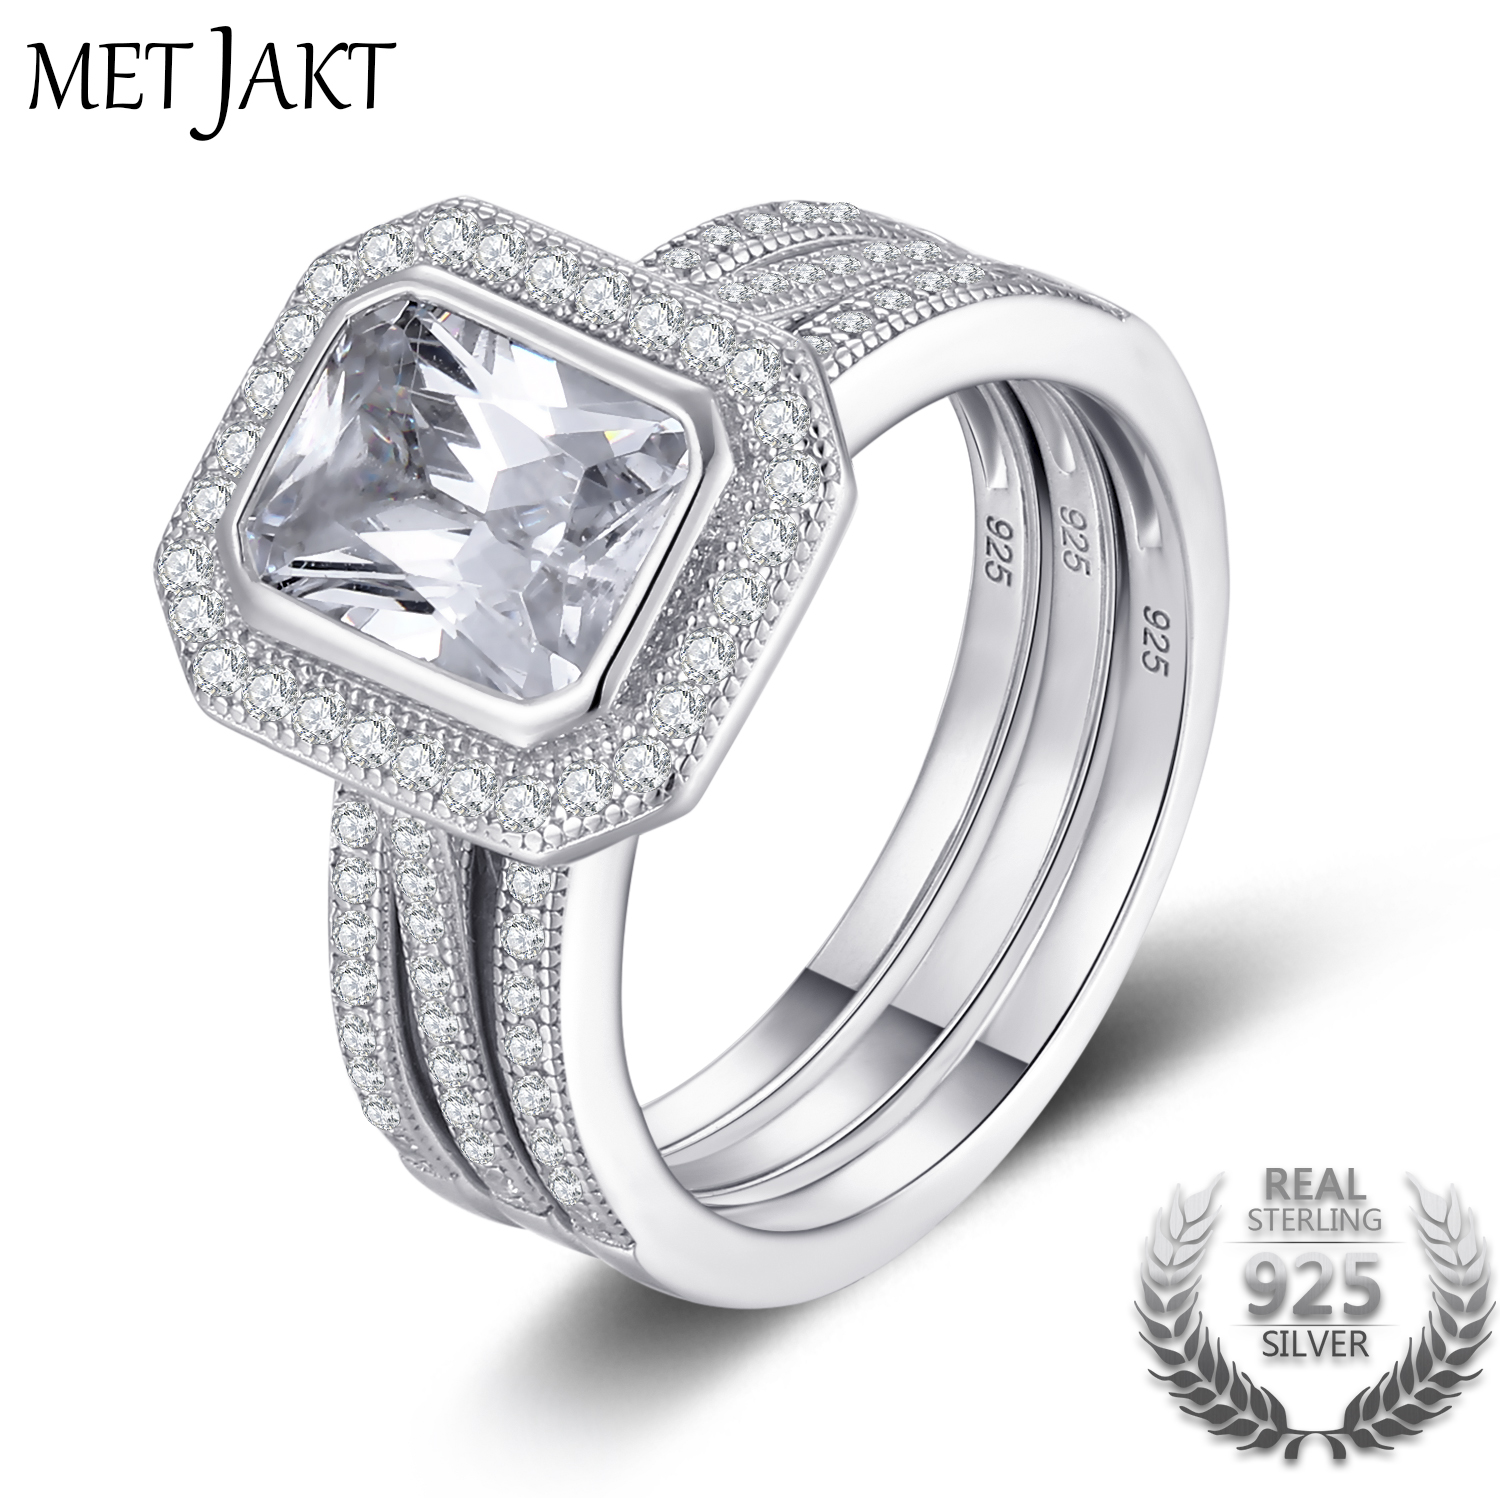 MetJakt Wedding Design Triple Rings Solid 925 Sterling Silver Cubic Zirconia Ring for Women's Wedding Birthday Party ballu bhc 3 000sb